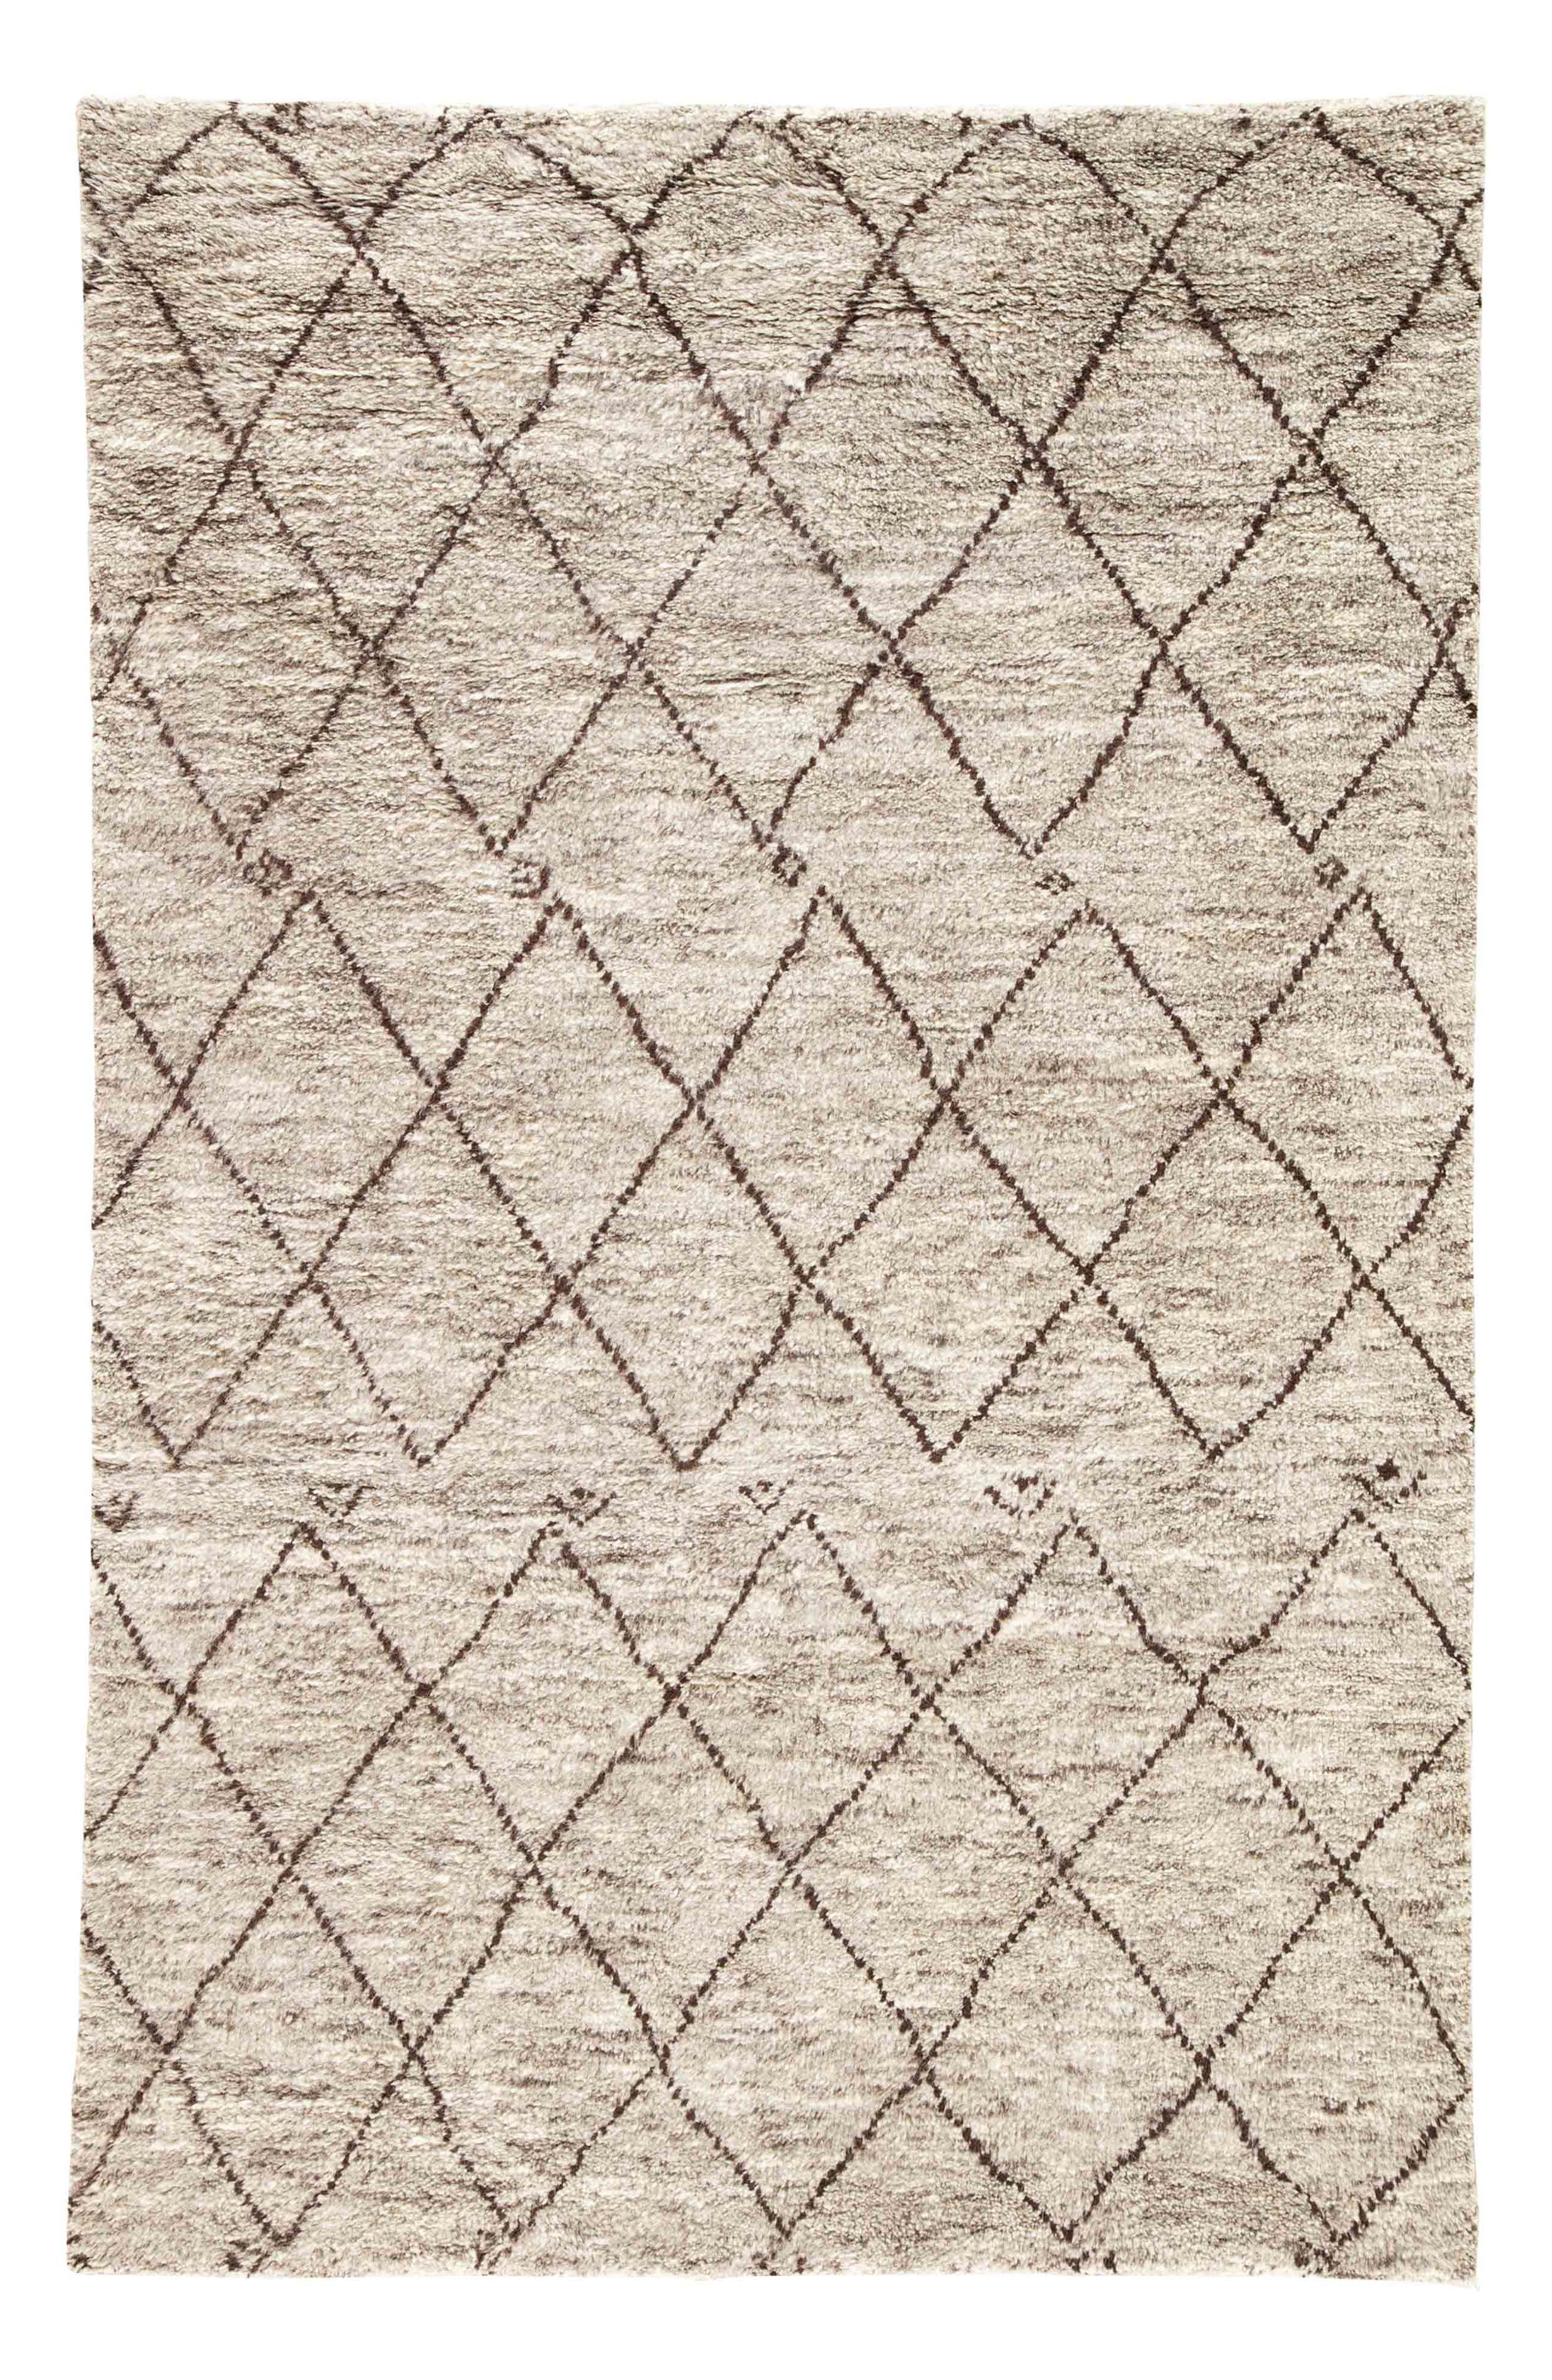 'Zola' Hand Knotted Wool Rug,                         Main,                         color, NATURAL/ BROWN